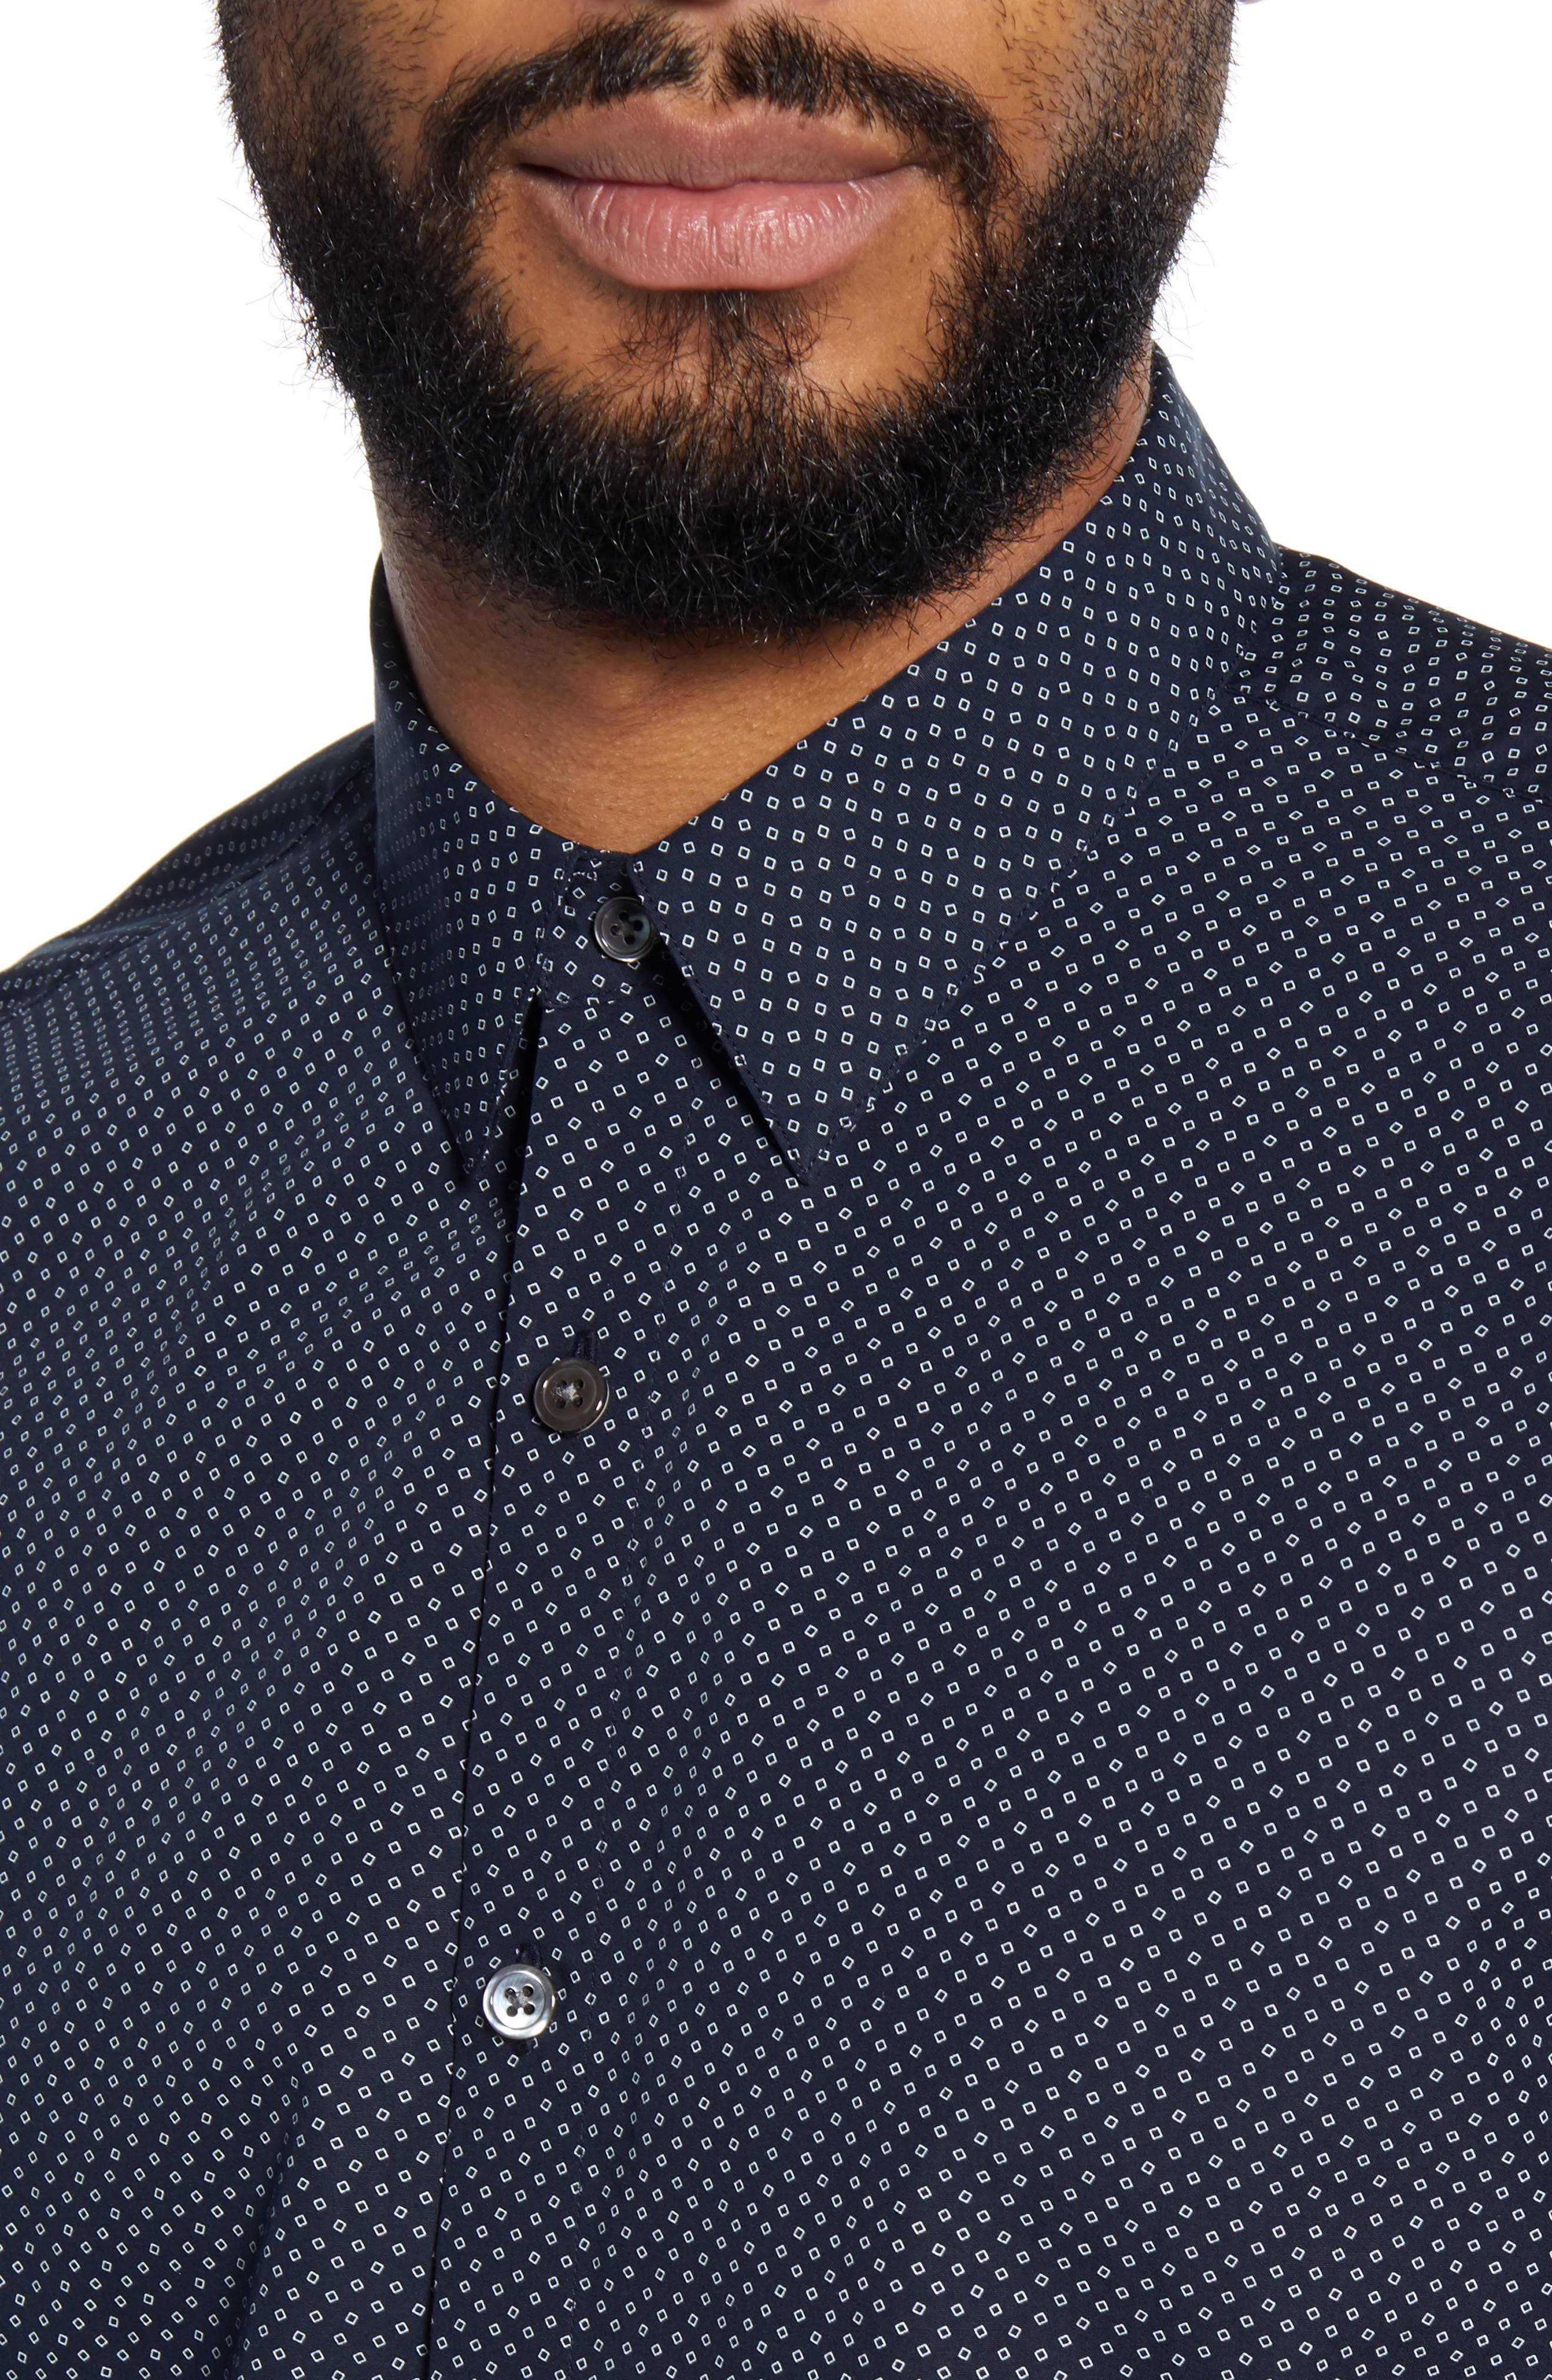 Theory T-shirts Irving Hyde Slim Fit Print Button-Up Shirt